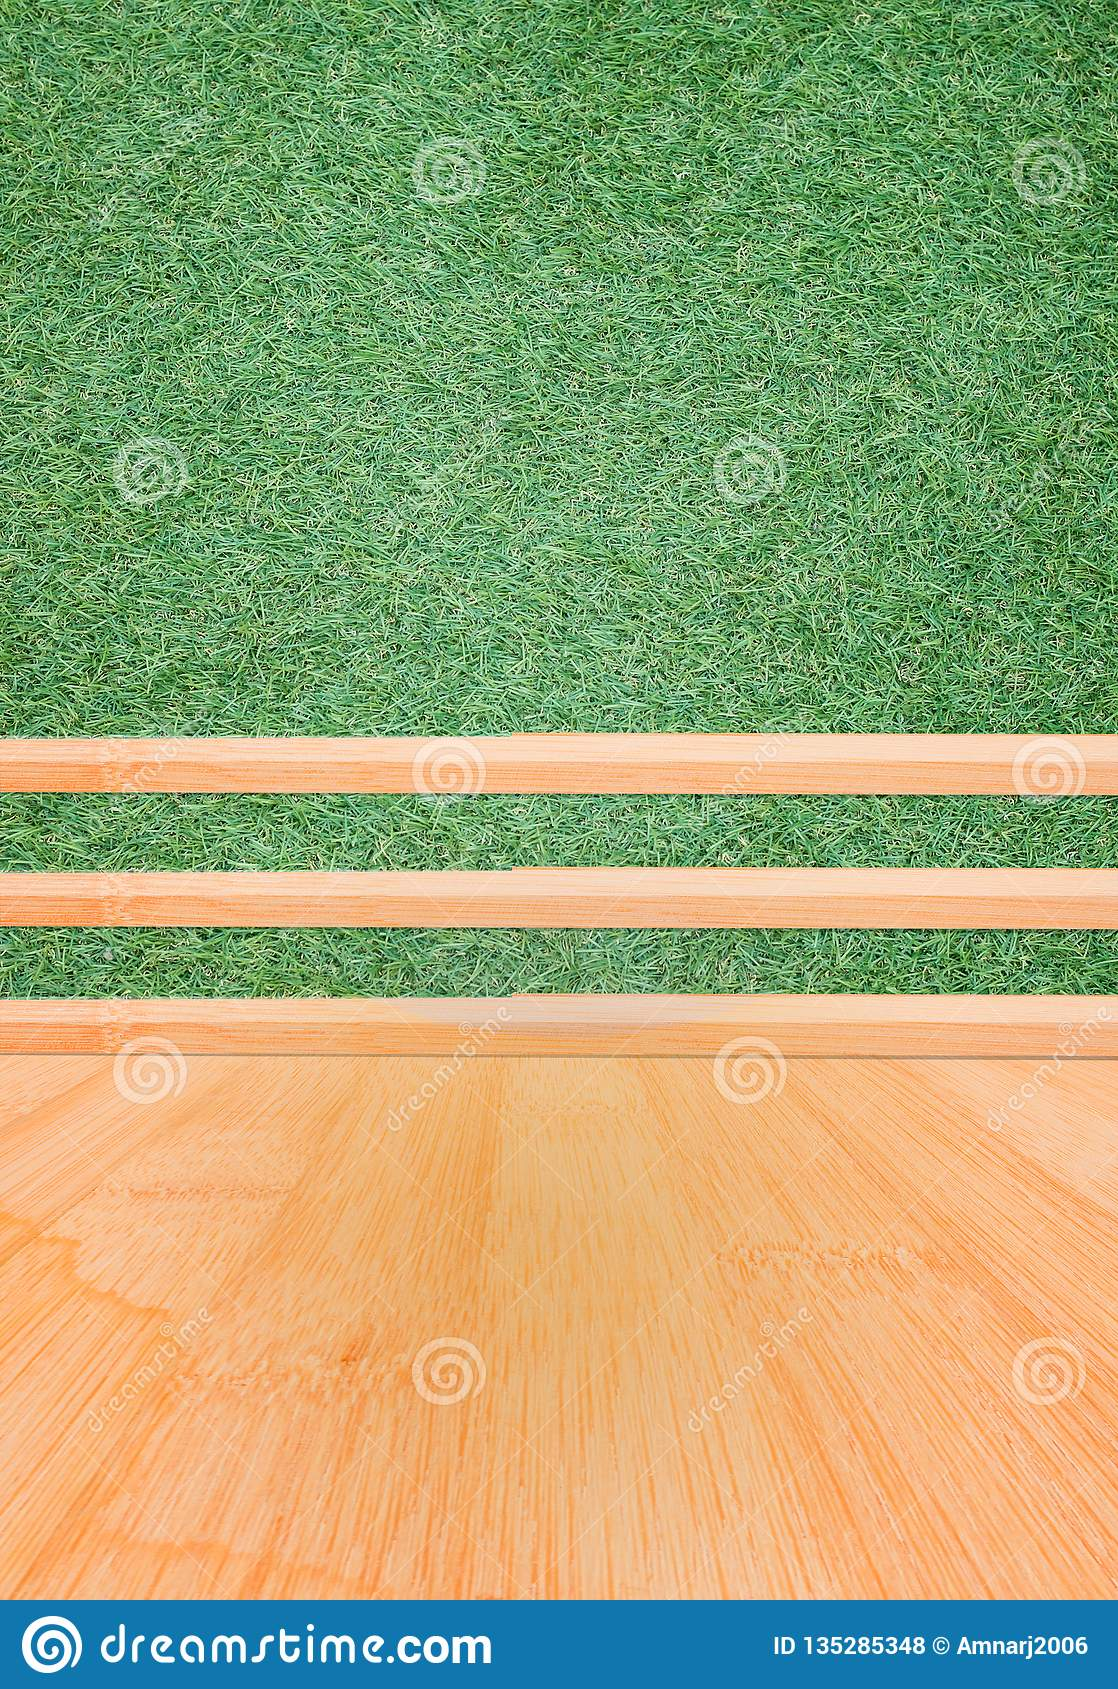 Bamboo texture background or backdrop